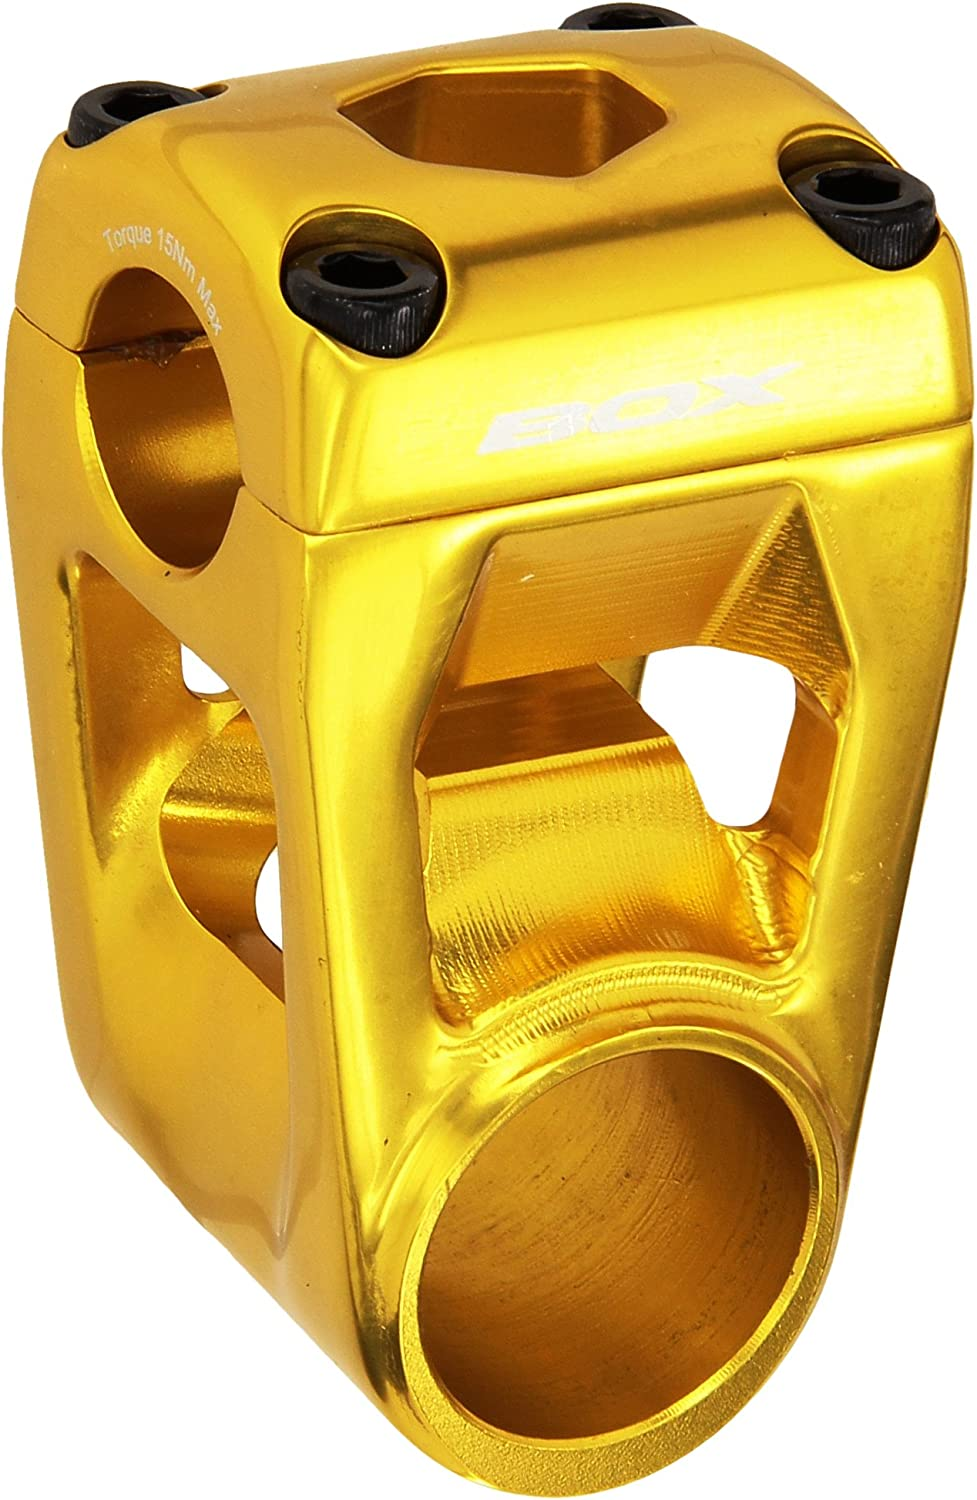 Cycle Group BXST13H0853GD Promax Hollow BMX Stem, gold